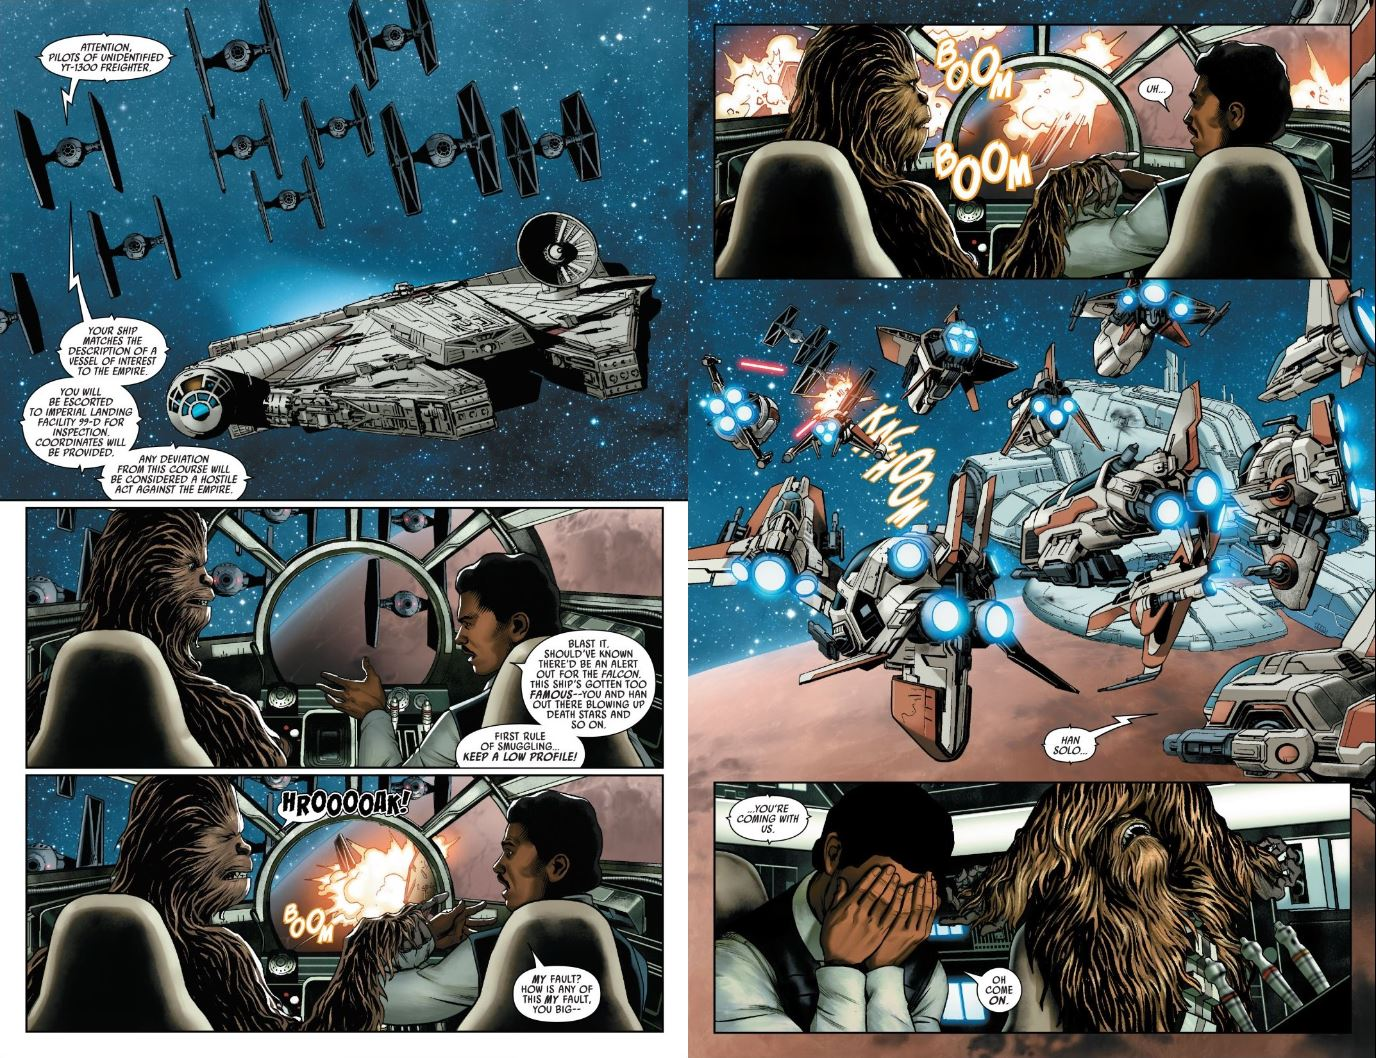 Star Wars (2020) #2 Lando and Chewbacca arrive at Tatooine